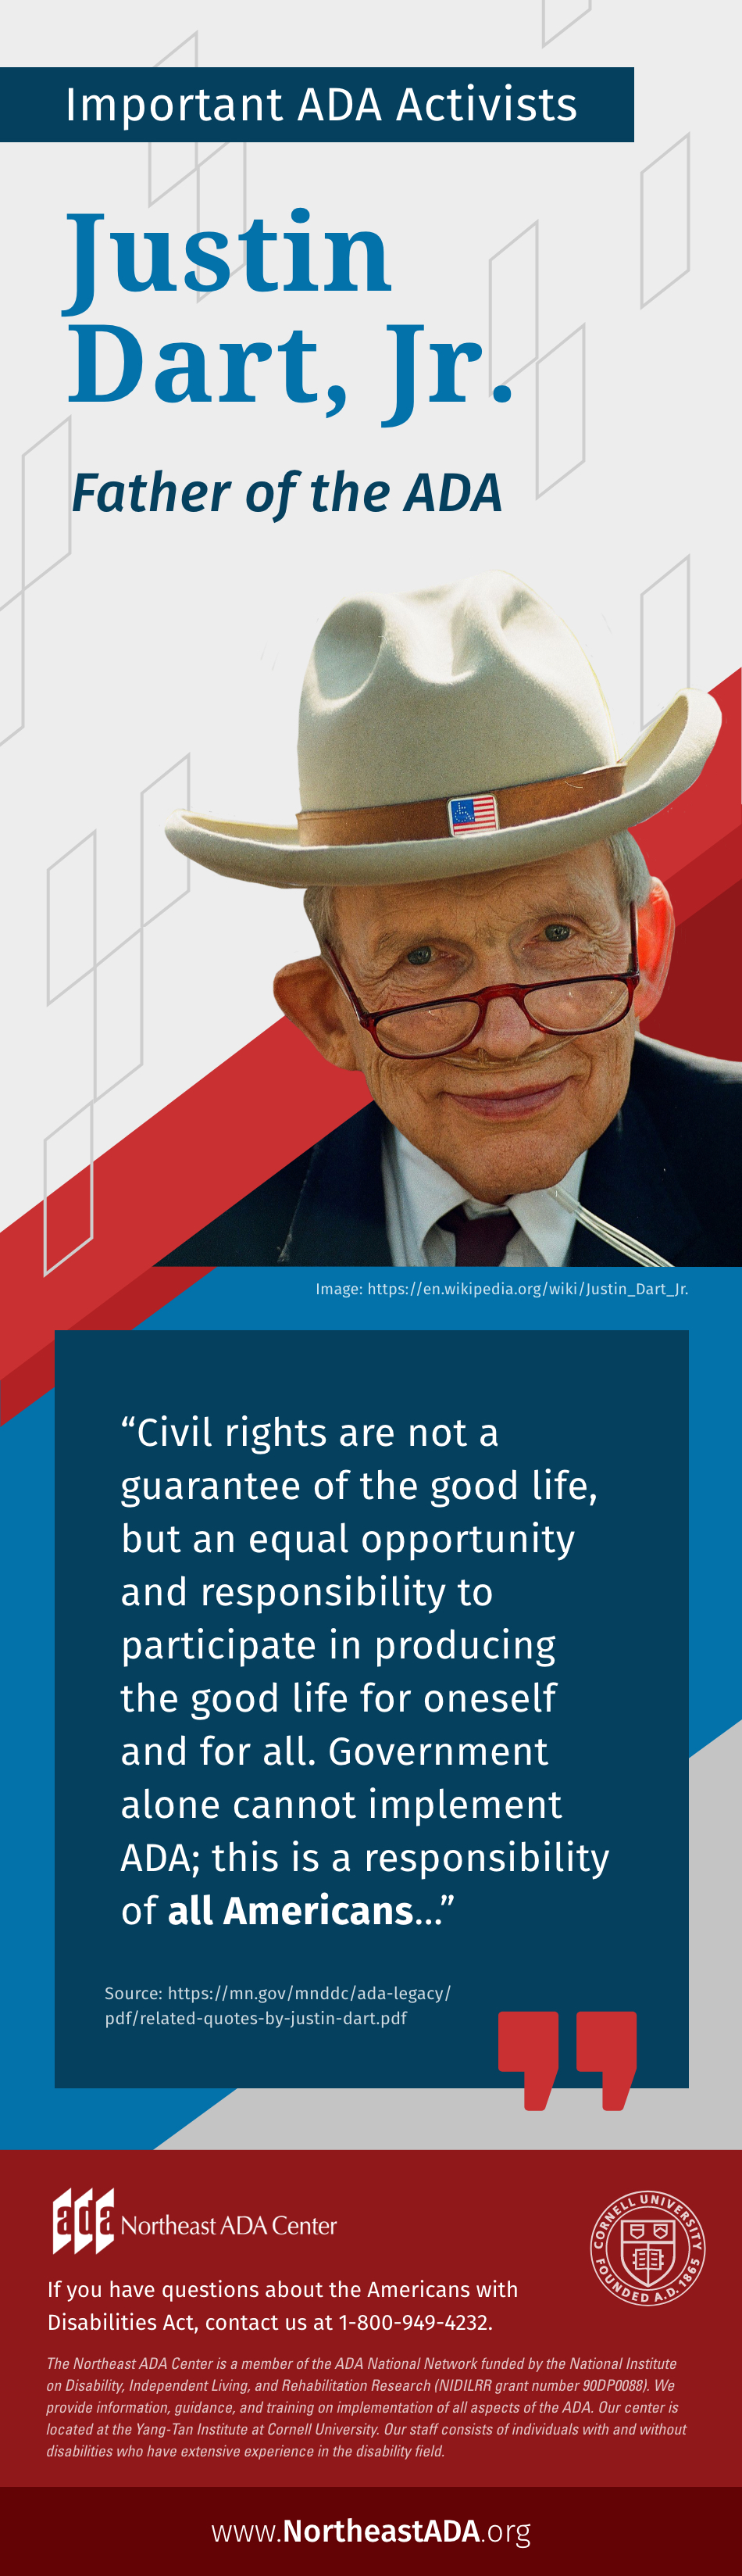 Infographic titled 'Important ADA Activists: Justin Dart, Jr.' Father of the ADA. 'Civil rights are not a guarantee of the good life, but an equal opportunity and responsibility to participate in producing the good life for oneself and for all. Government alone cannot implement ADA; this is a responsibility of all Americans…' Image source: https://en.wikipedia.org/wiki/Justin_Dart_Jr. Quote source: https://mn.gov/mnddc/ada-legacy/pdf/related-quotes-by-justin-dart.pdf If you have questions about the Americans with Disabilities Act, contact us at 1-800-949-4232